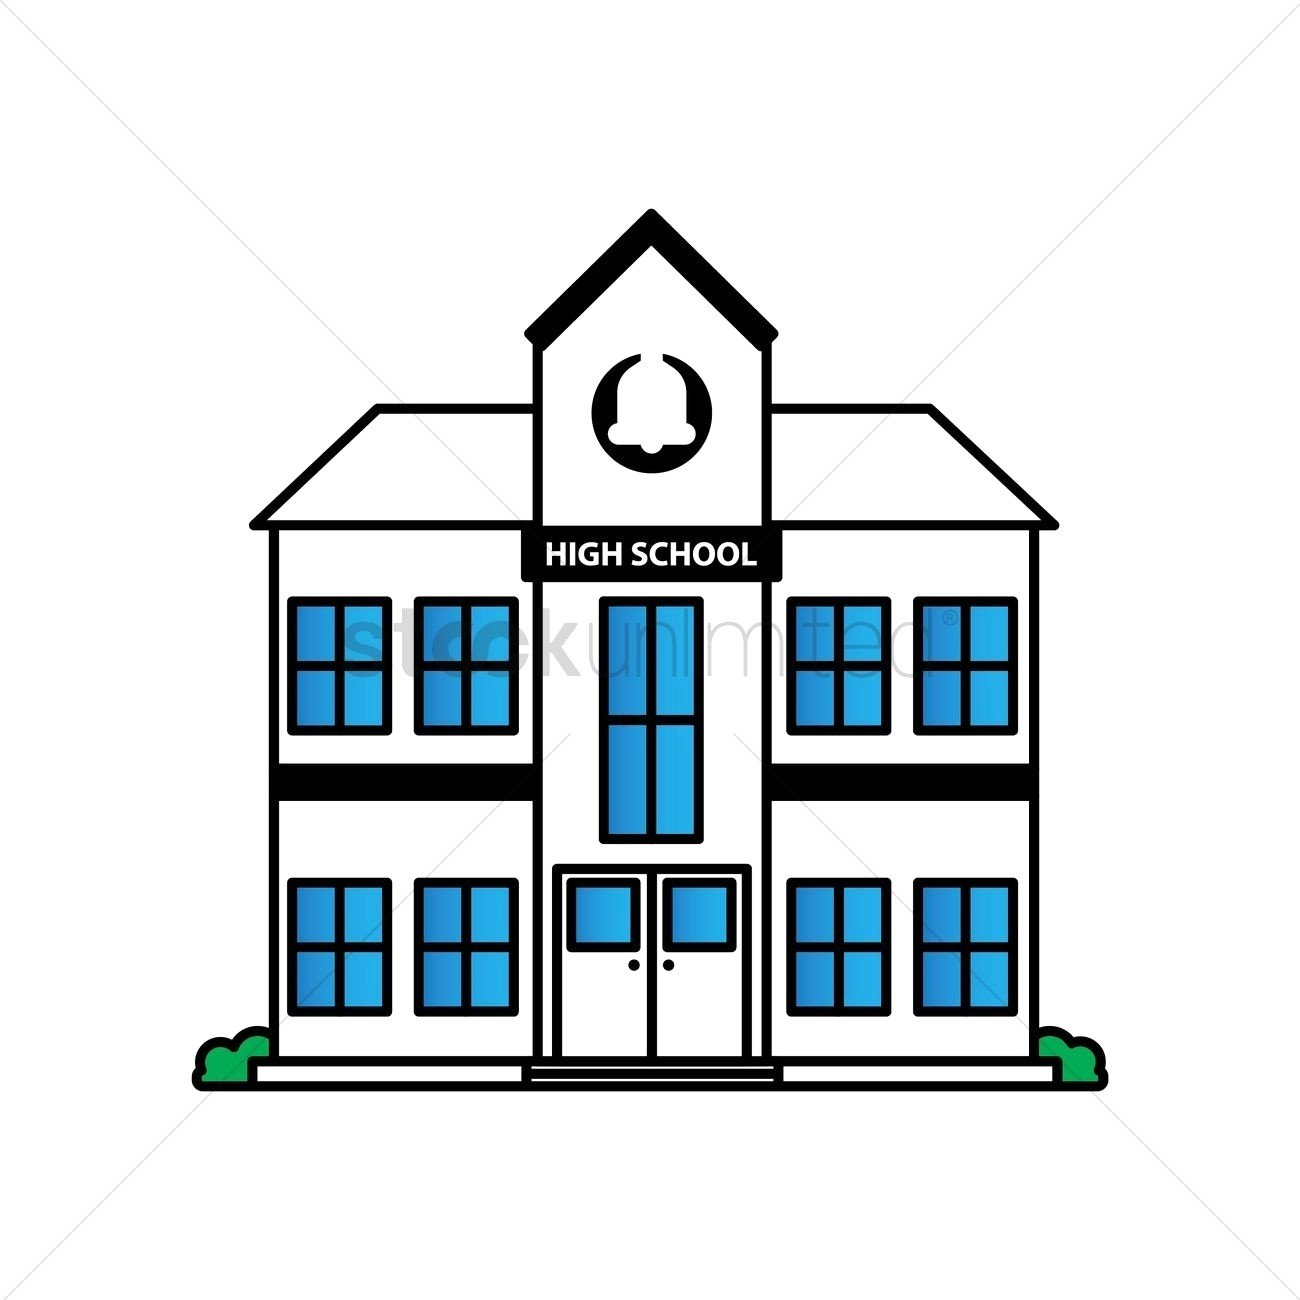 1300x1300 Free High School Building Vector Image 1623543 Stockunlimited For